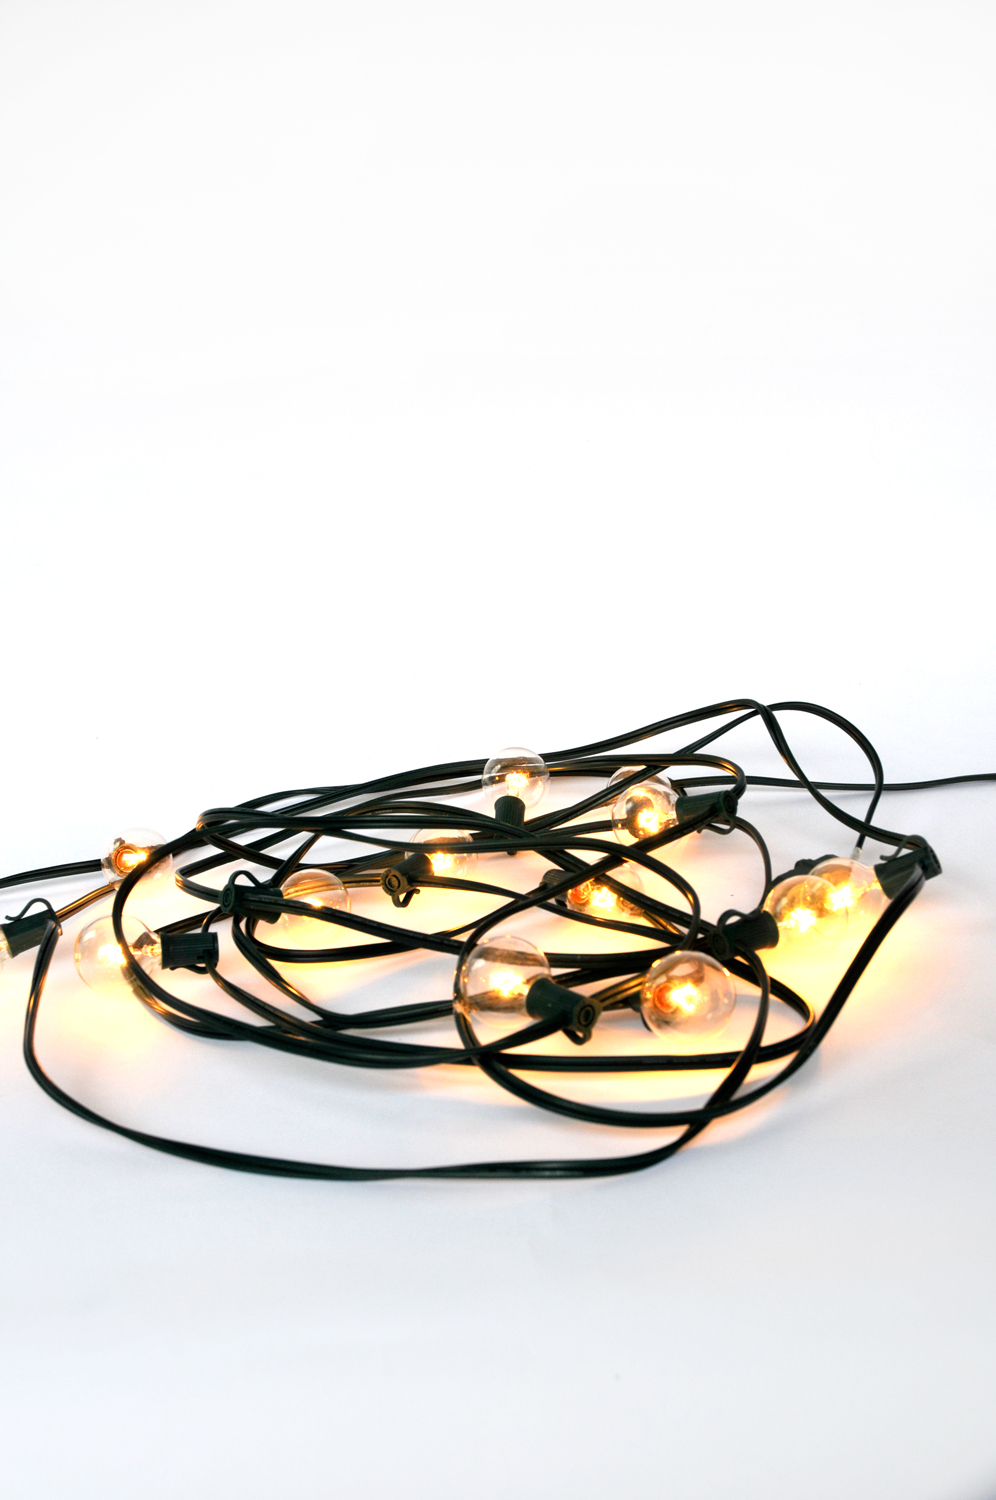 Offering a warm incandescent glow these string lights are great indoors or out. They come in 10 foot strands with 8 bulbs each.